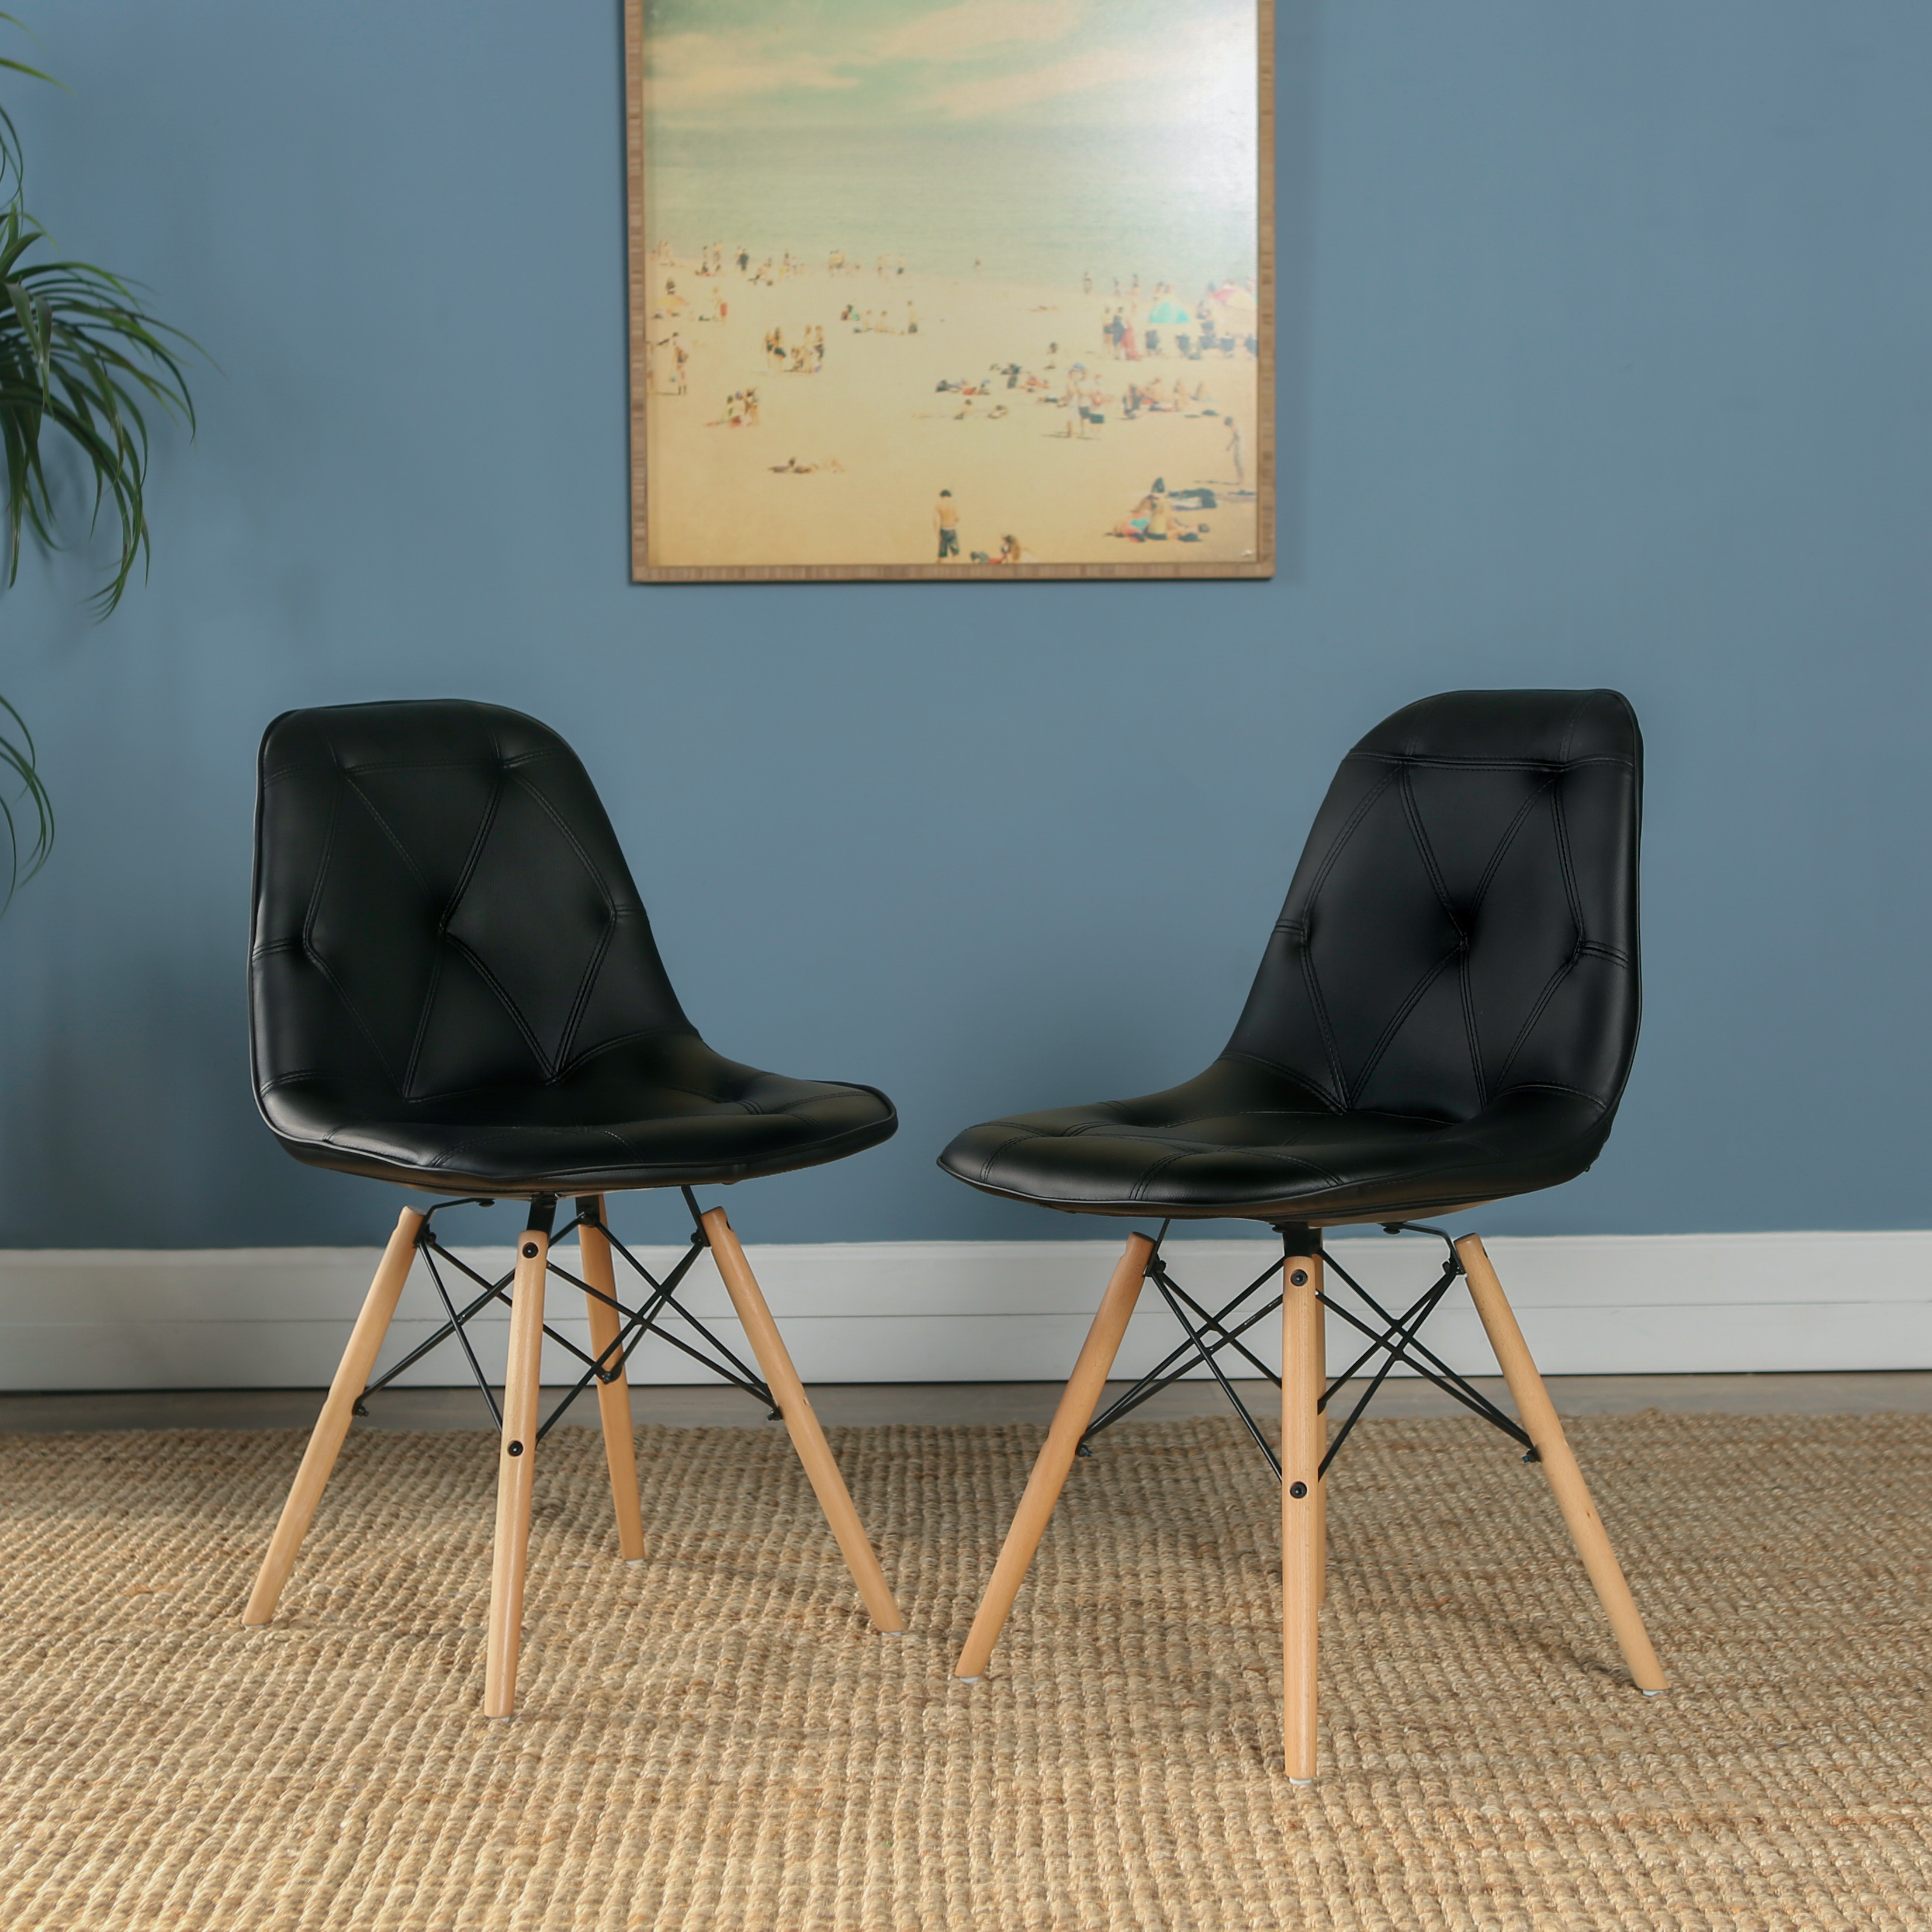 eames leather chair dining covers jysk mid century modern upholstered faux home office ft myers kitchen chairs set